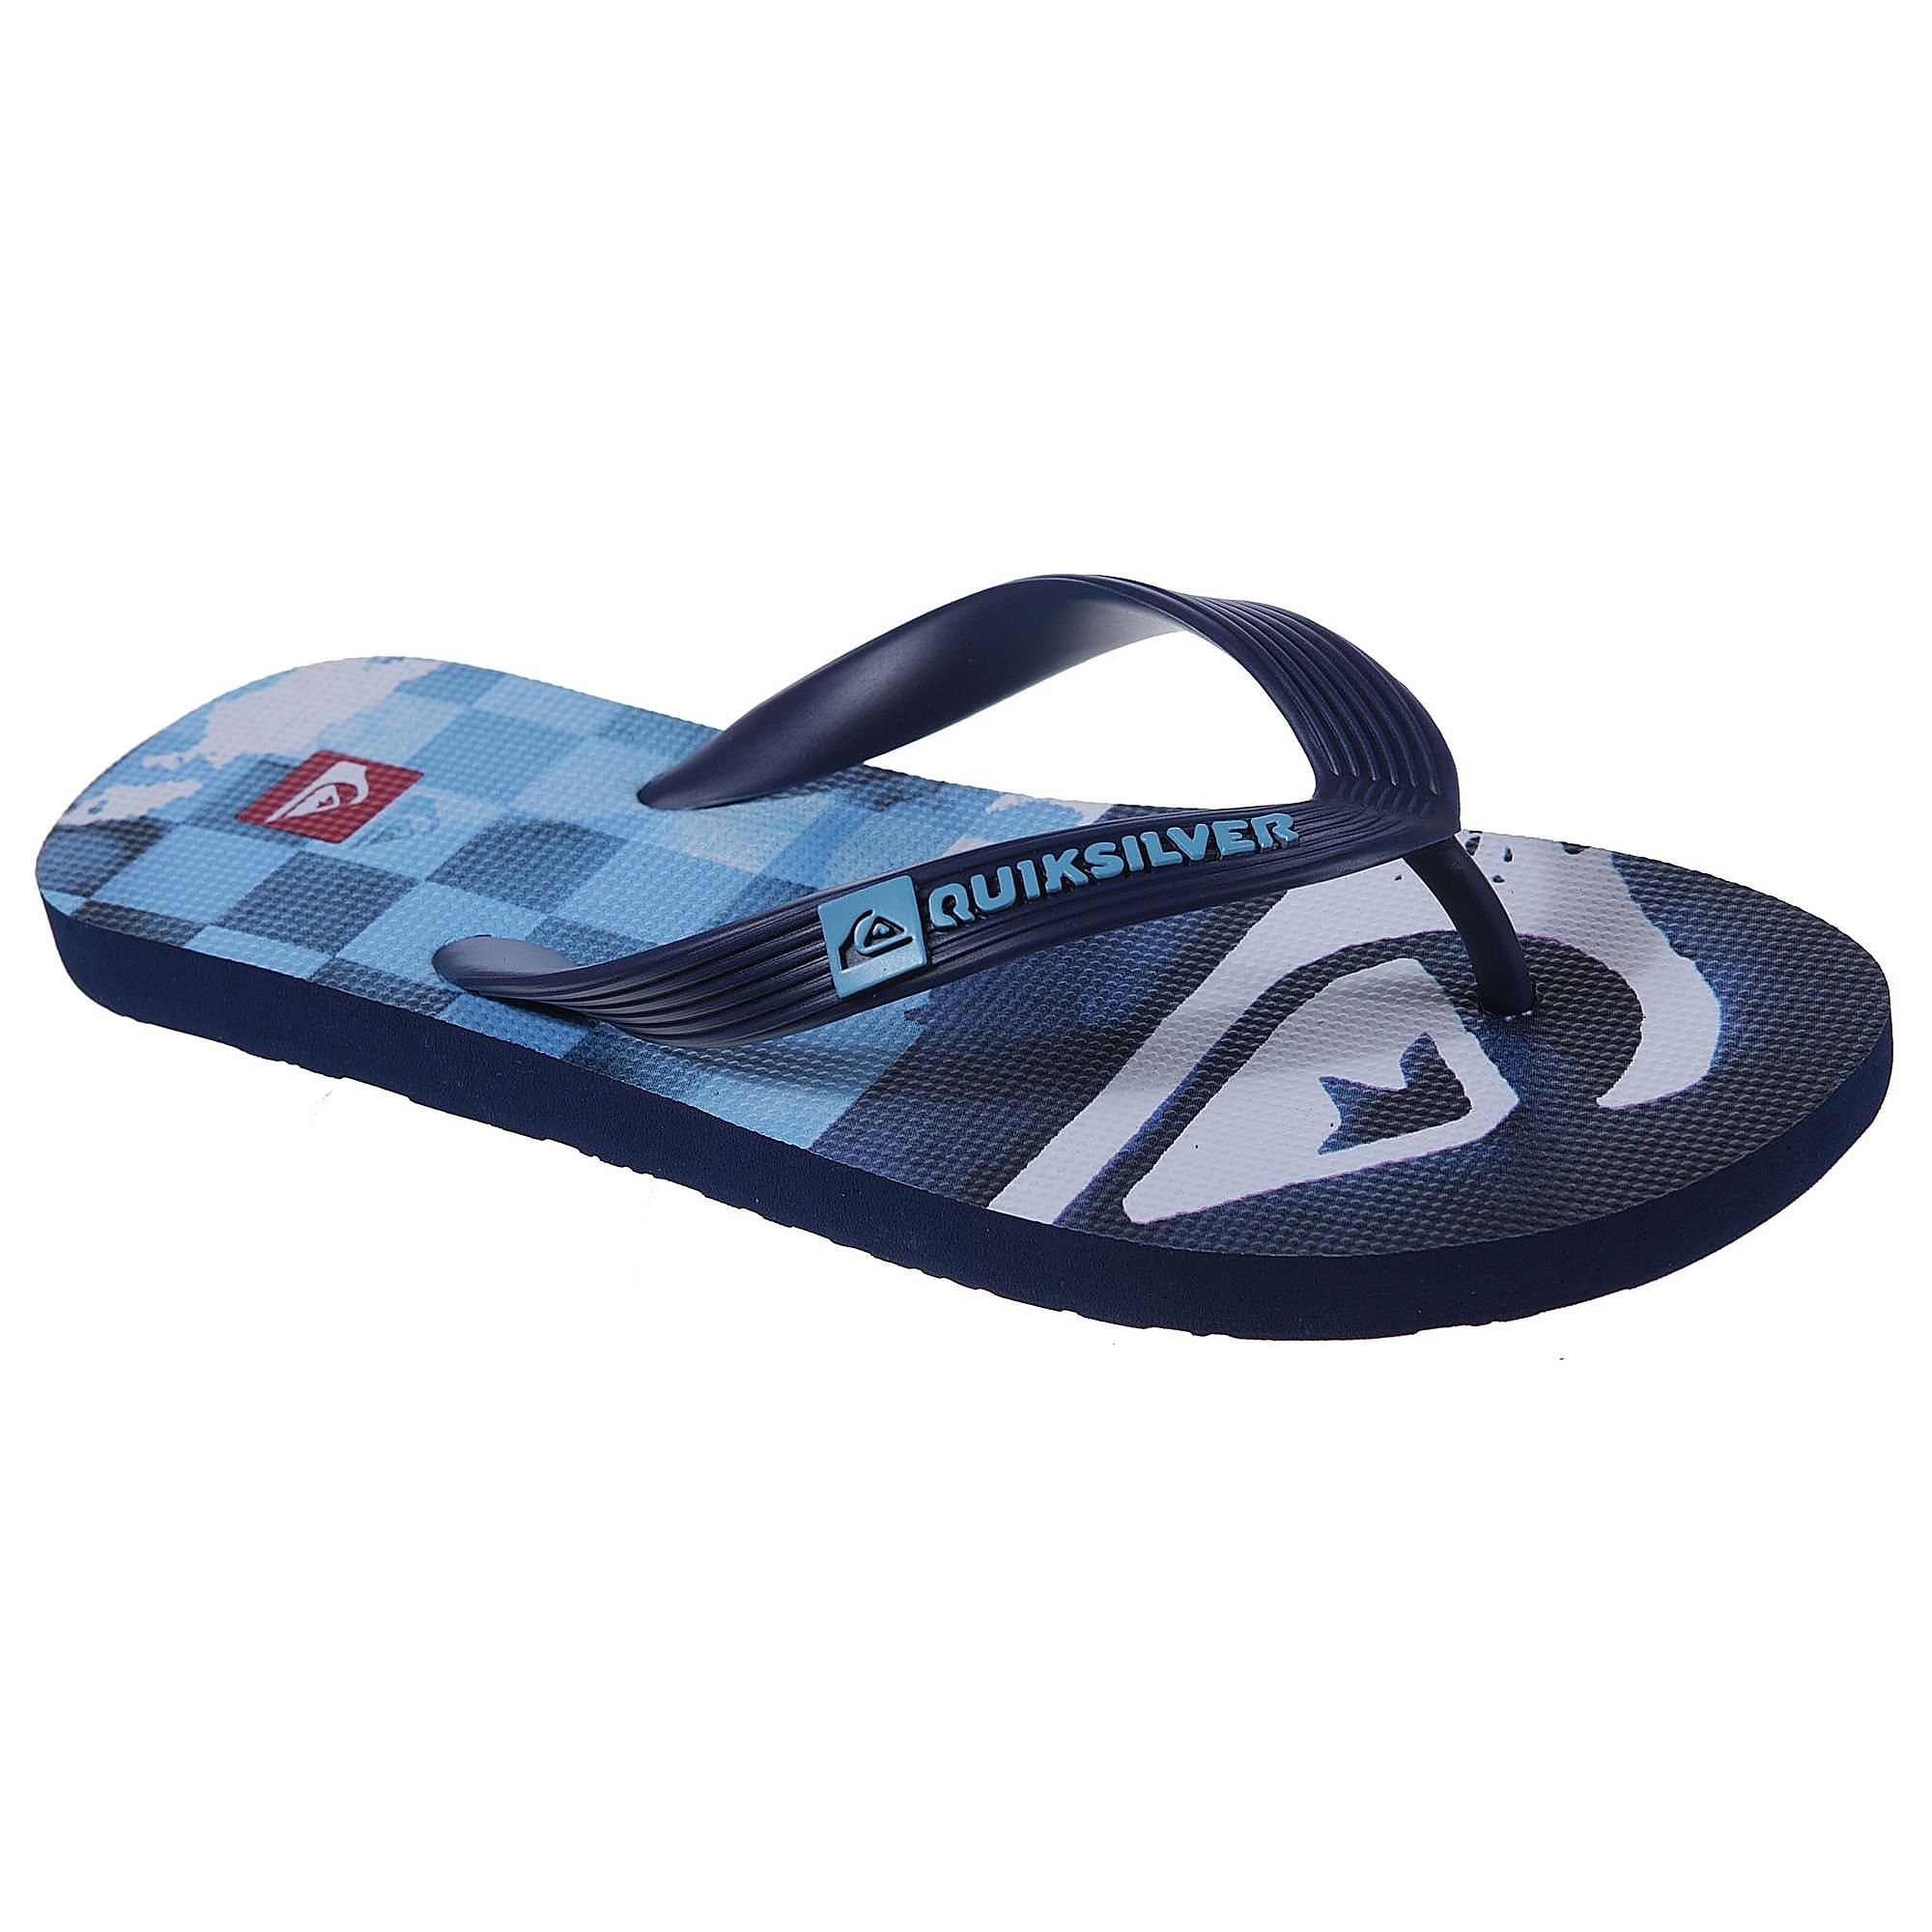 QUIKSILVER S BEACH J SLIPPER